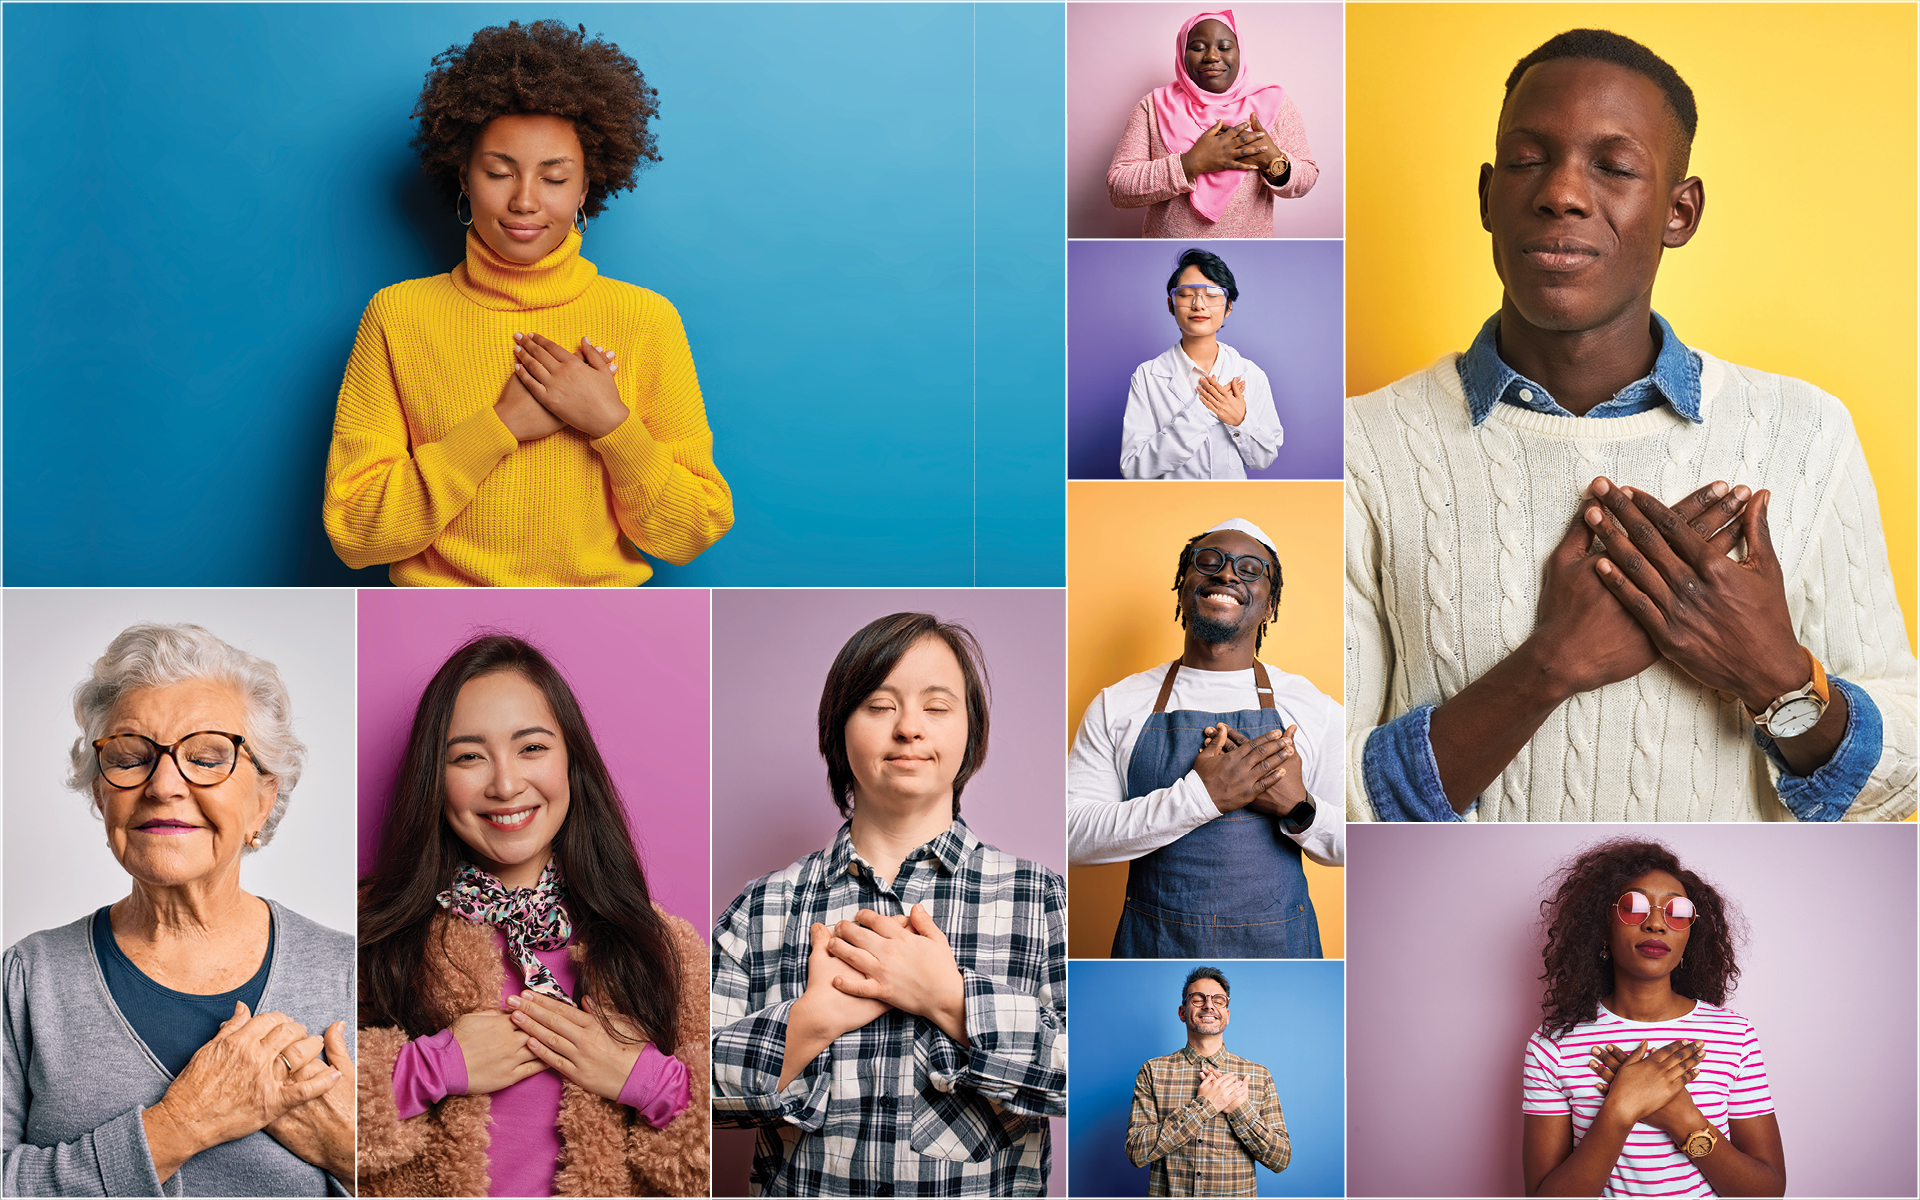 Meditation Teacher Sharon Salzberg Talks About the Power of Loving-Kindness - Image collage of men and women holding their hands over their hearts